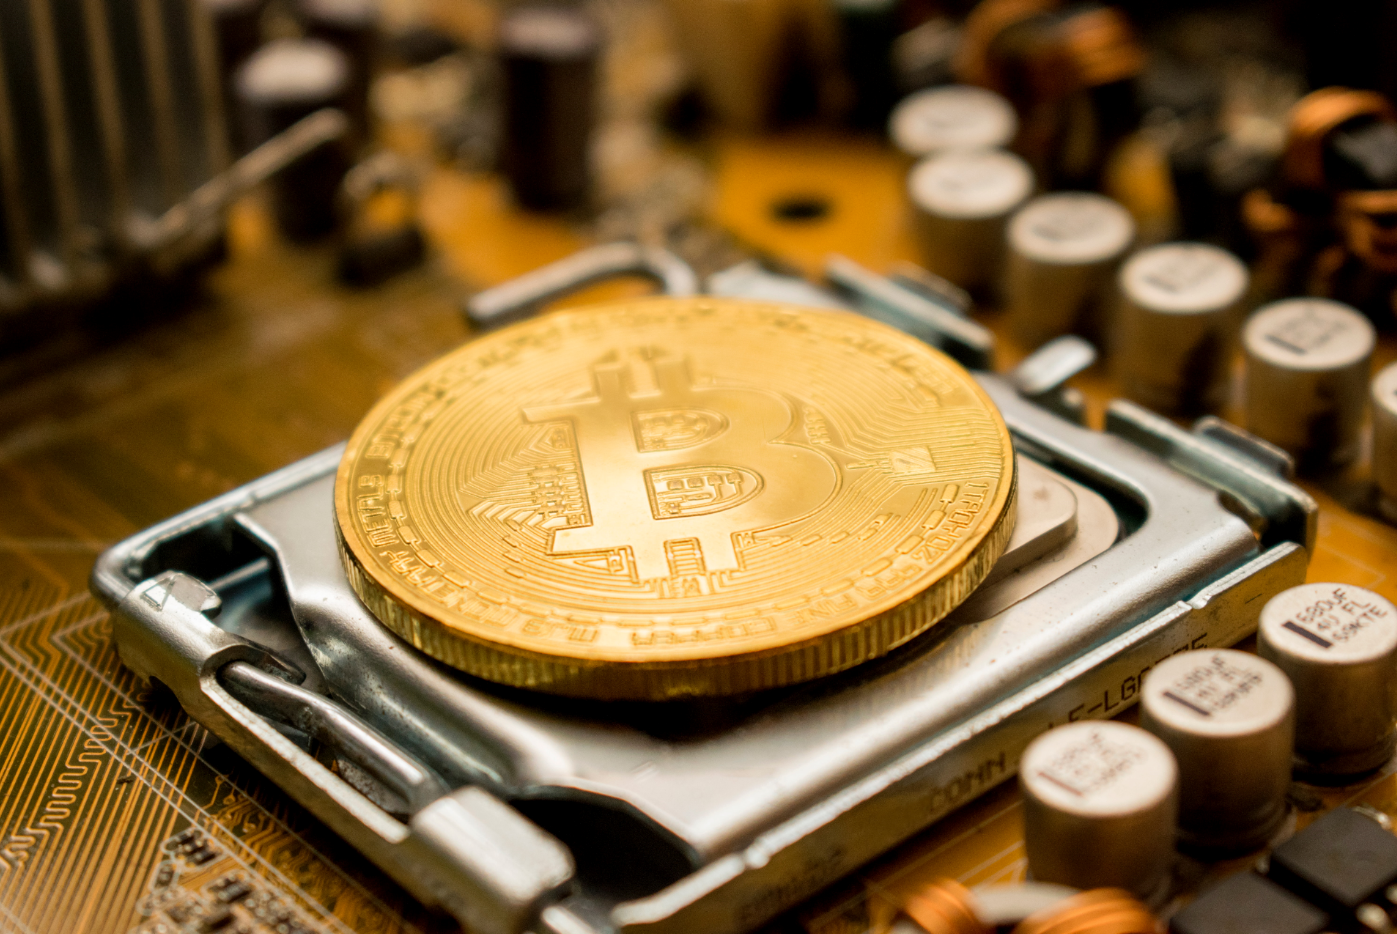 iBex Markets – Trading Bitcoin with this Broker